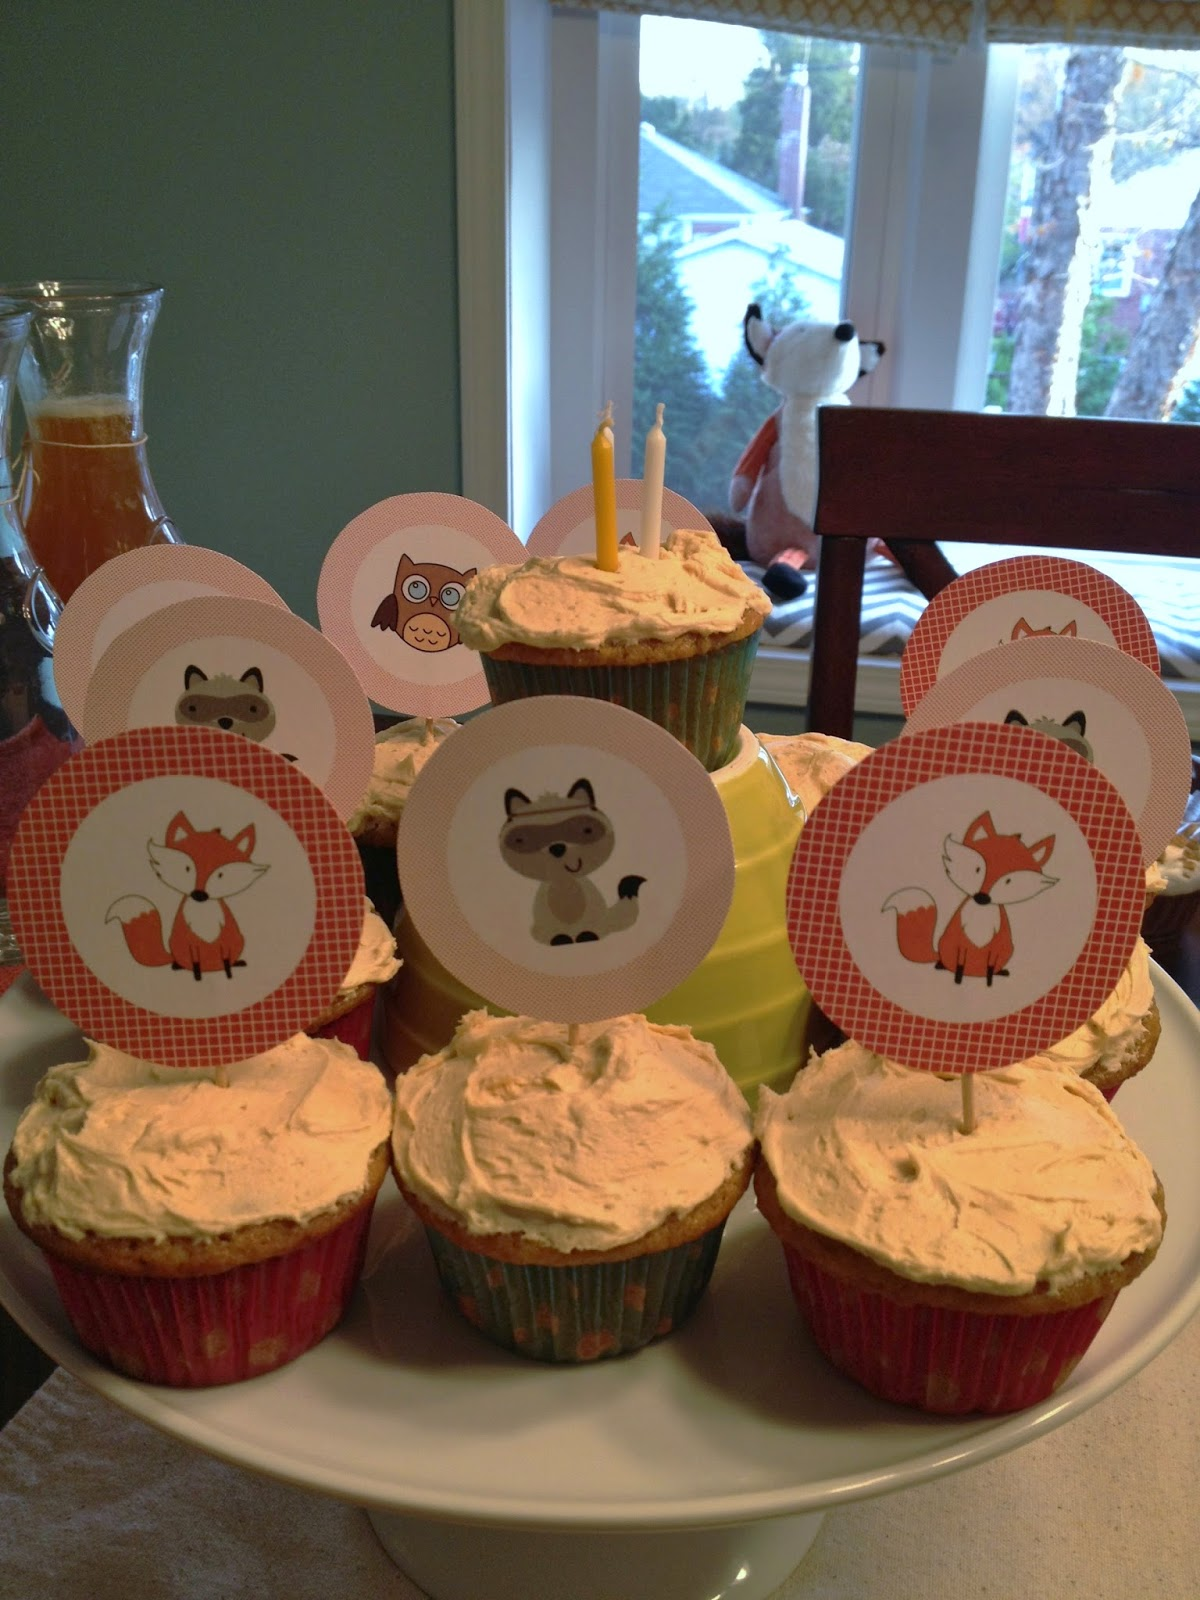 http://ablueskykindoflife.blogspot.com/2014/11/brown-butter-pumpkin-cupcakes-with.html